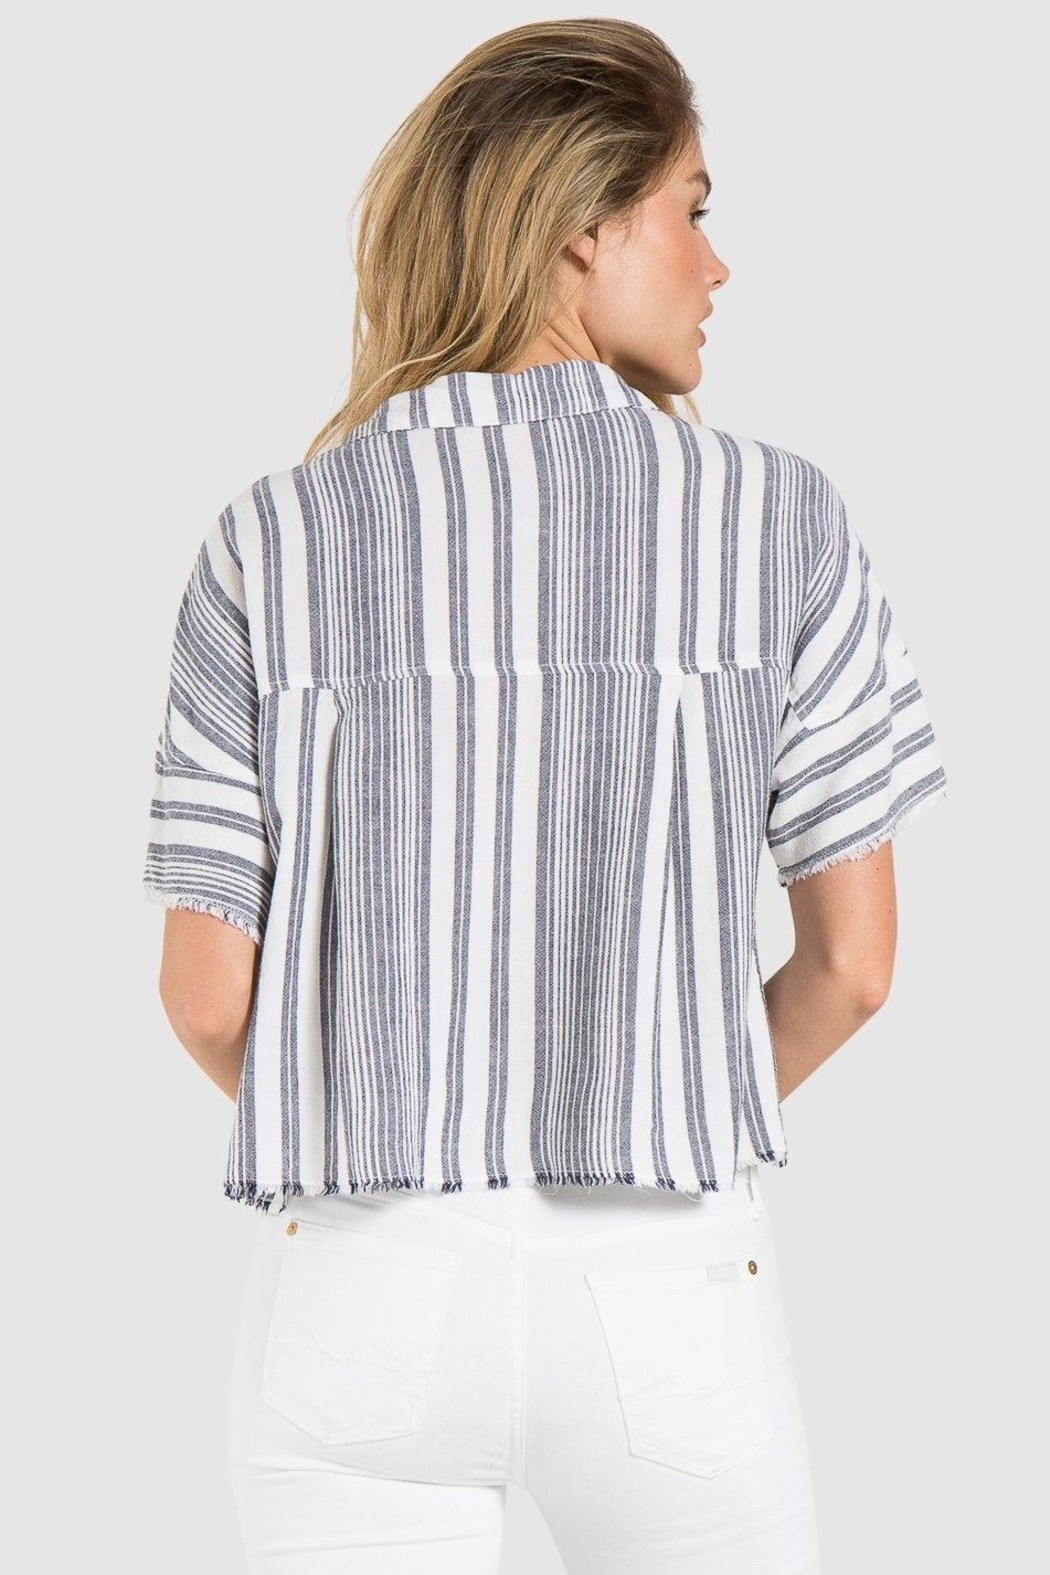 Bella Dahl Fray Hem Button-Down - Front Full Image